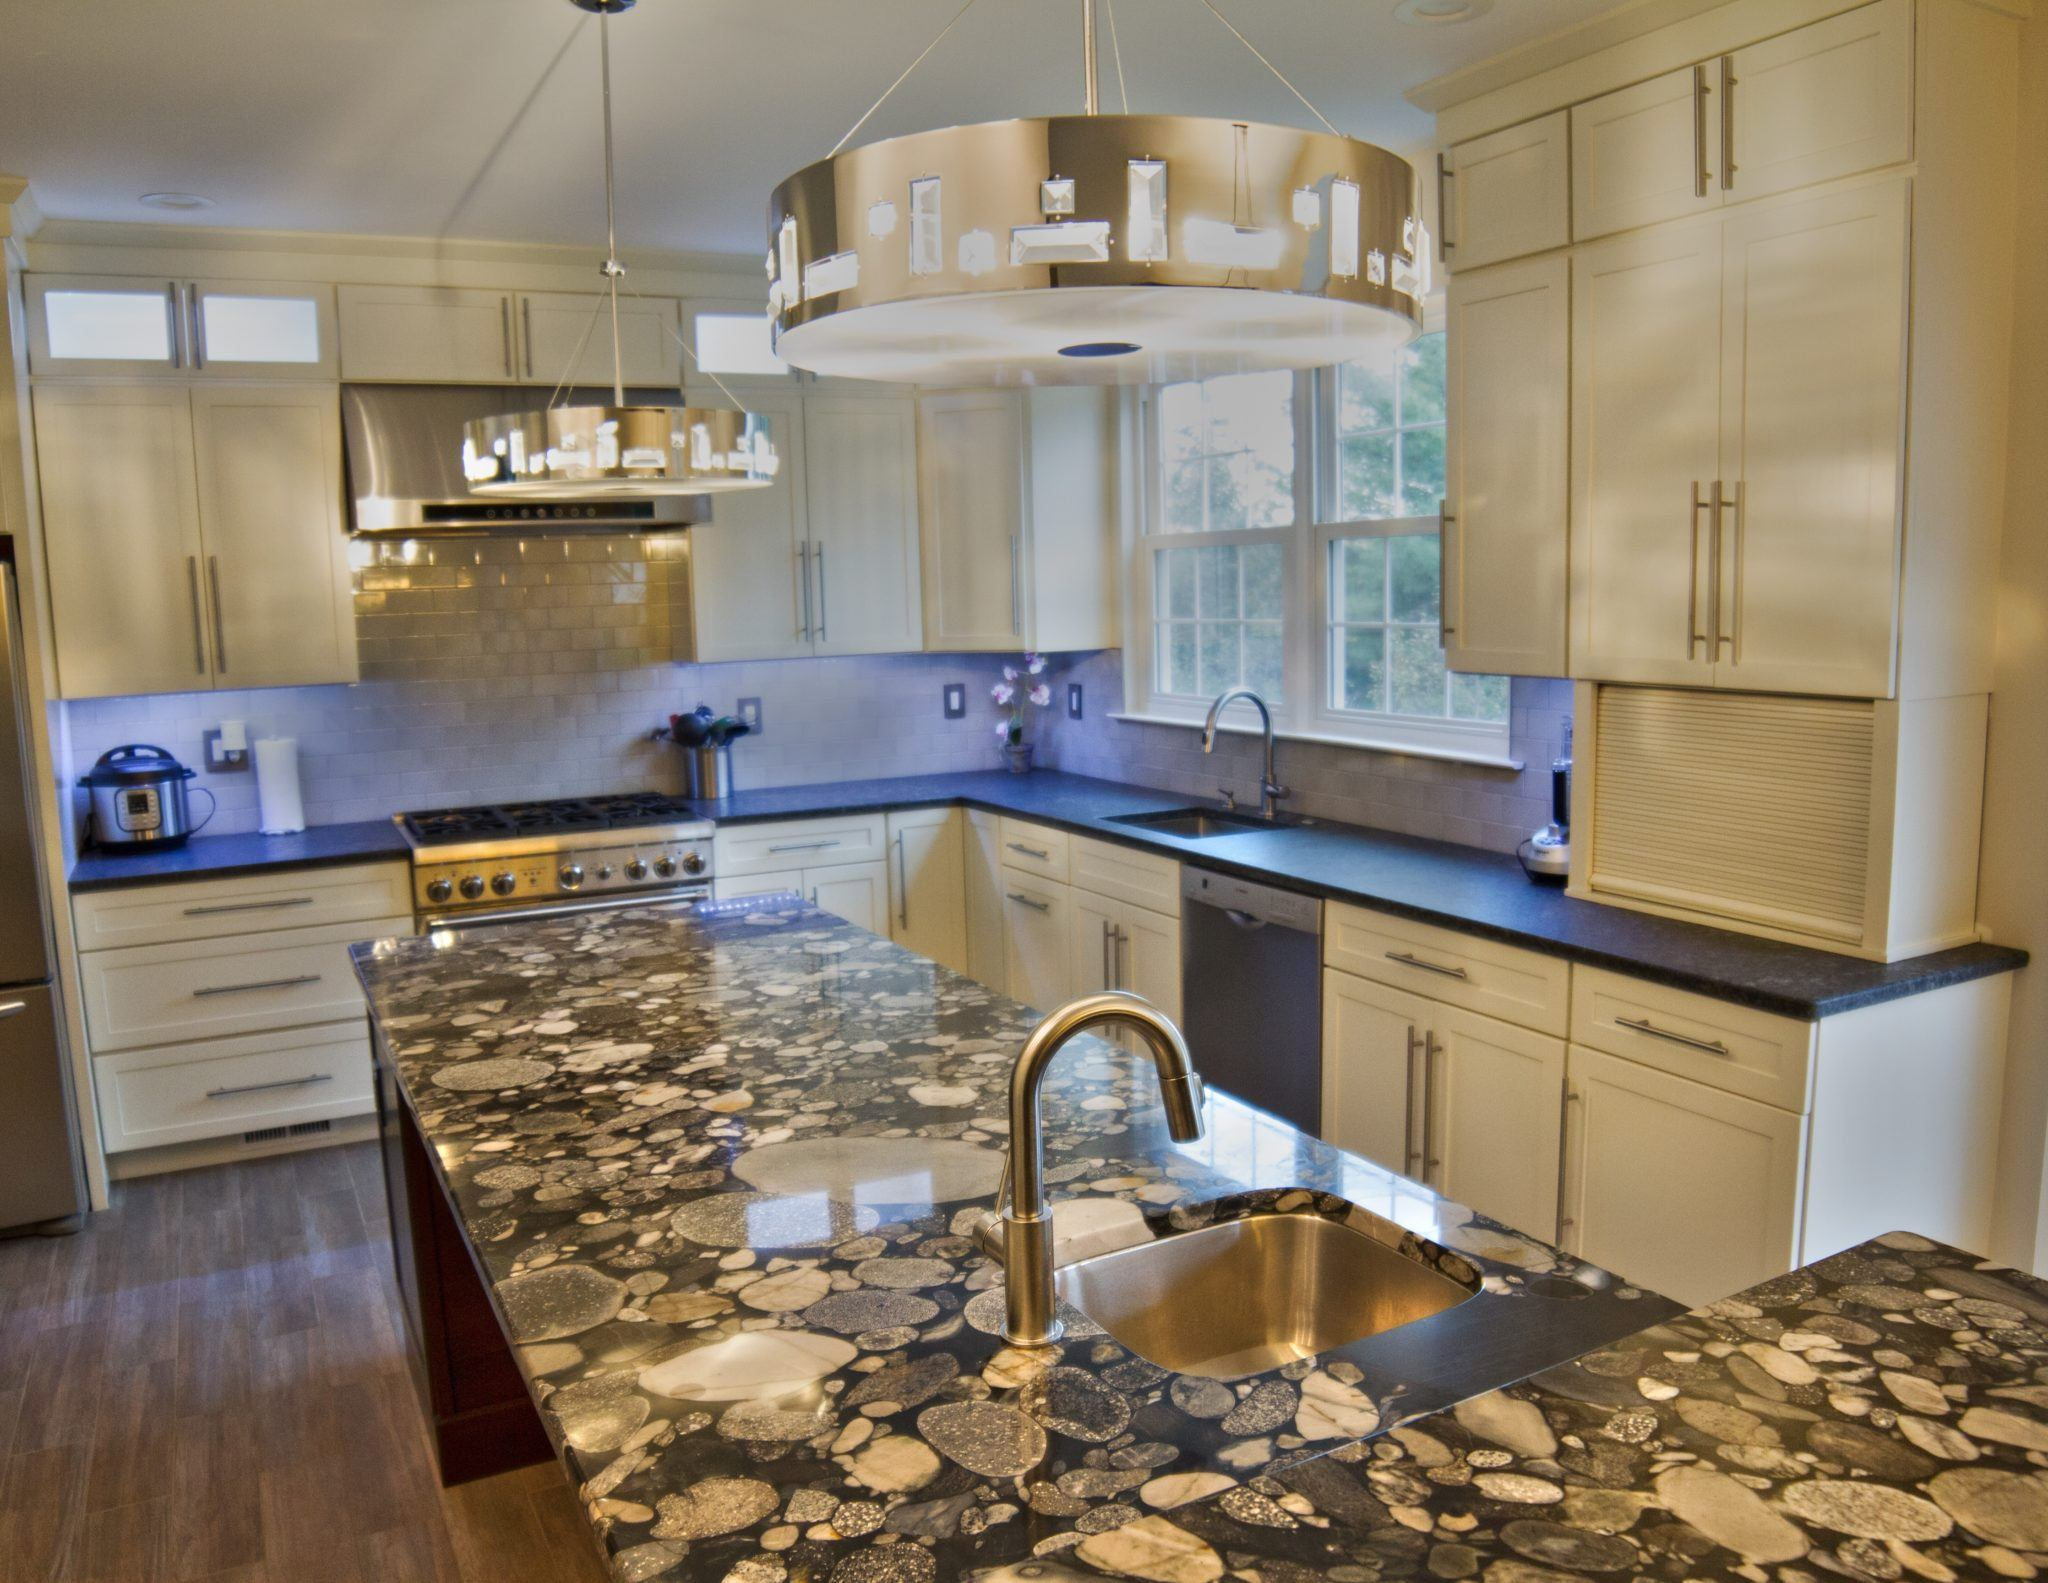 Quartz Countertop Prices Canada Different Kitchen Countertop Properties And Pricing